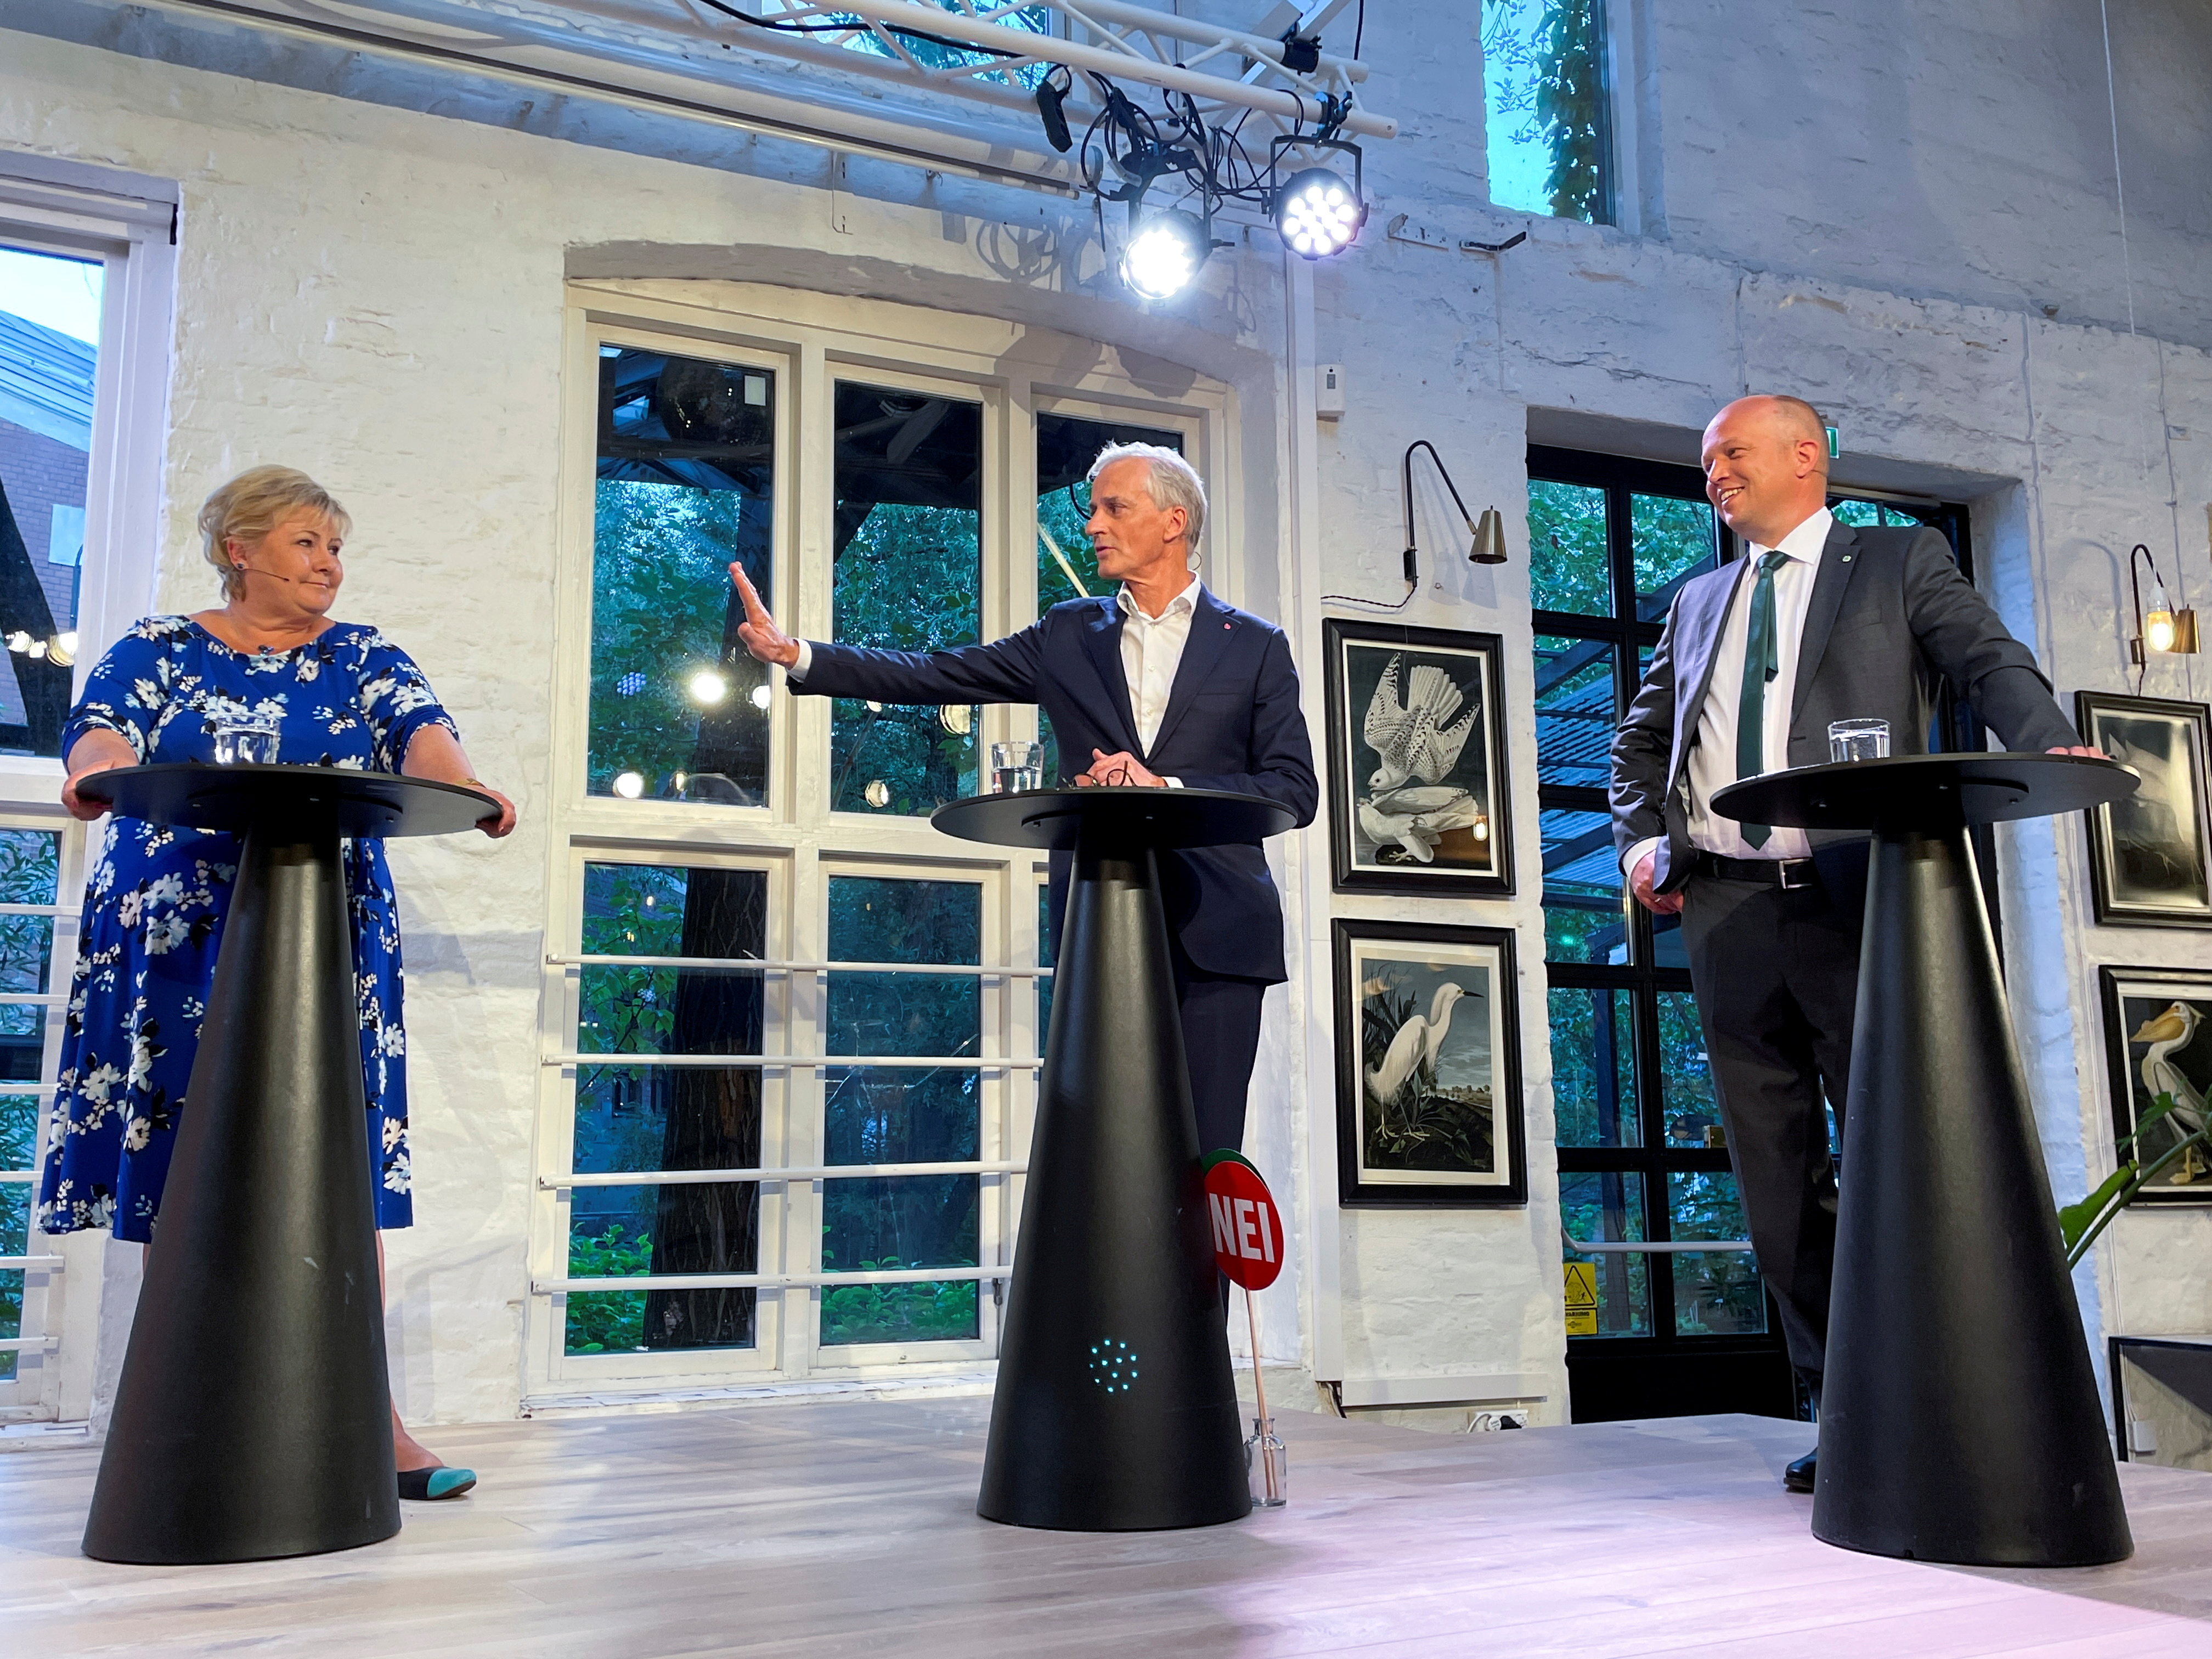 The three candidates for Norway's prime minister Erna Solberg from the Conservatives, Jonas Gahr Stoere from Labour Party and Trygve Slagsvold Vedum from the Centre Party attend a debate in central Oslo, Norway August 9, 2021. REUTERS/Gwladys Fouche/File Photo